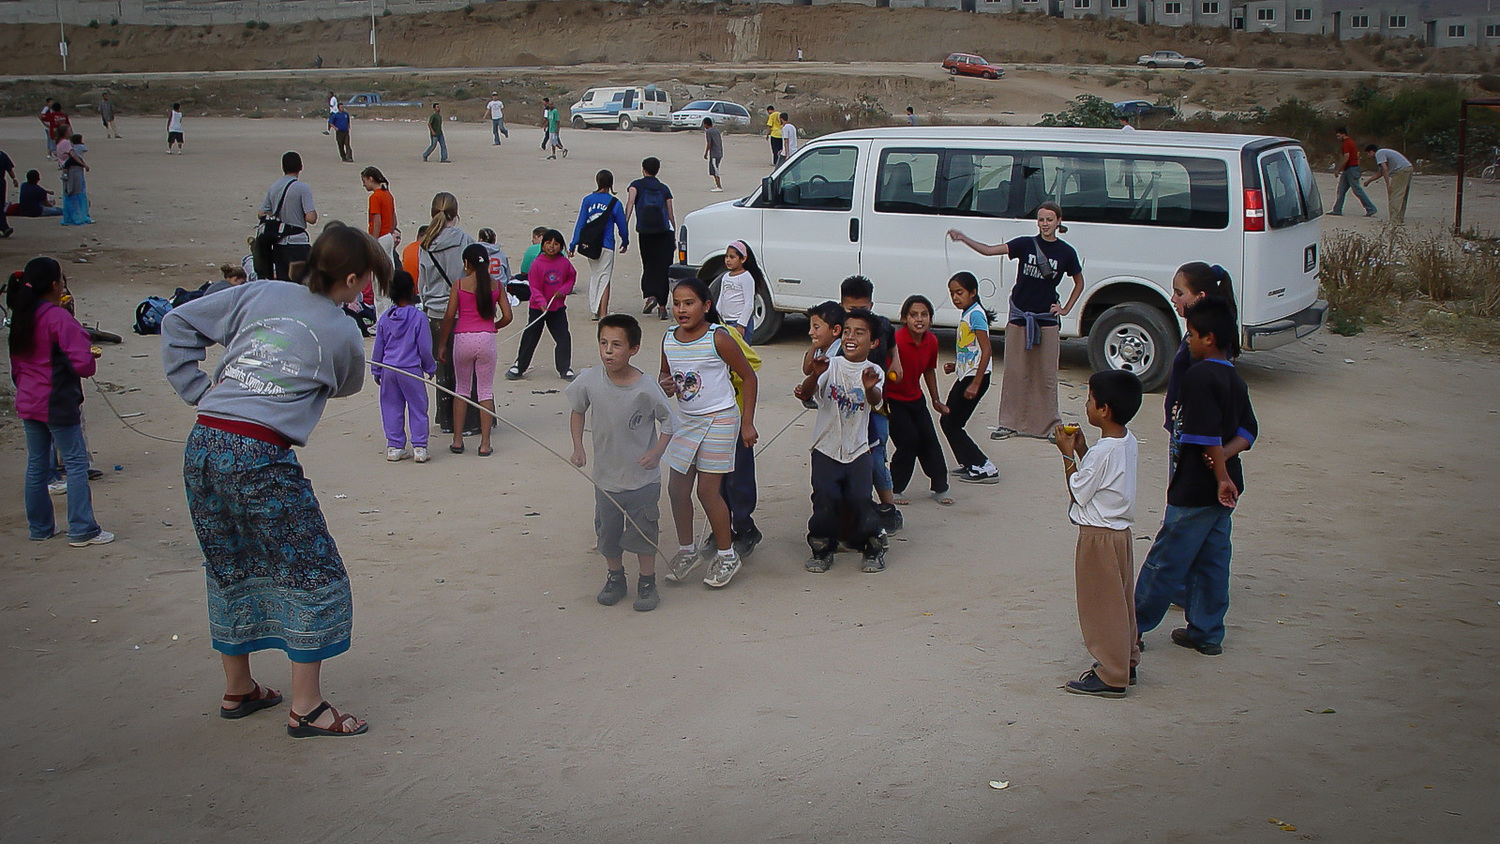 - I began serving with SLAM in 2002. This picture is from a SLAM trip to serve in Ensenada, Mexico.